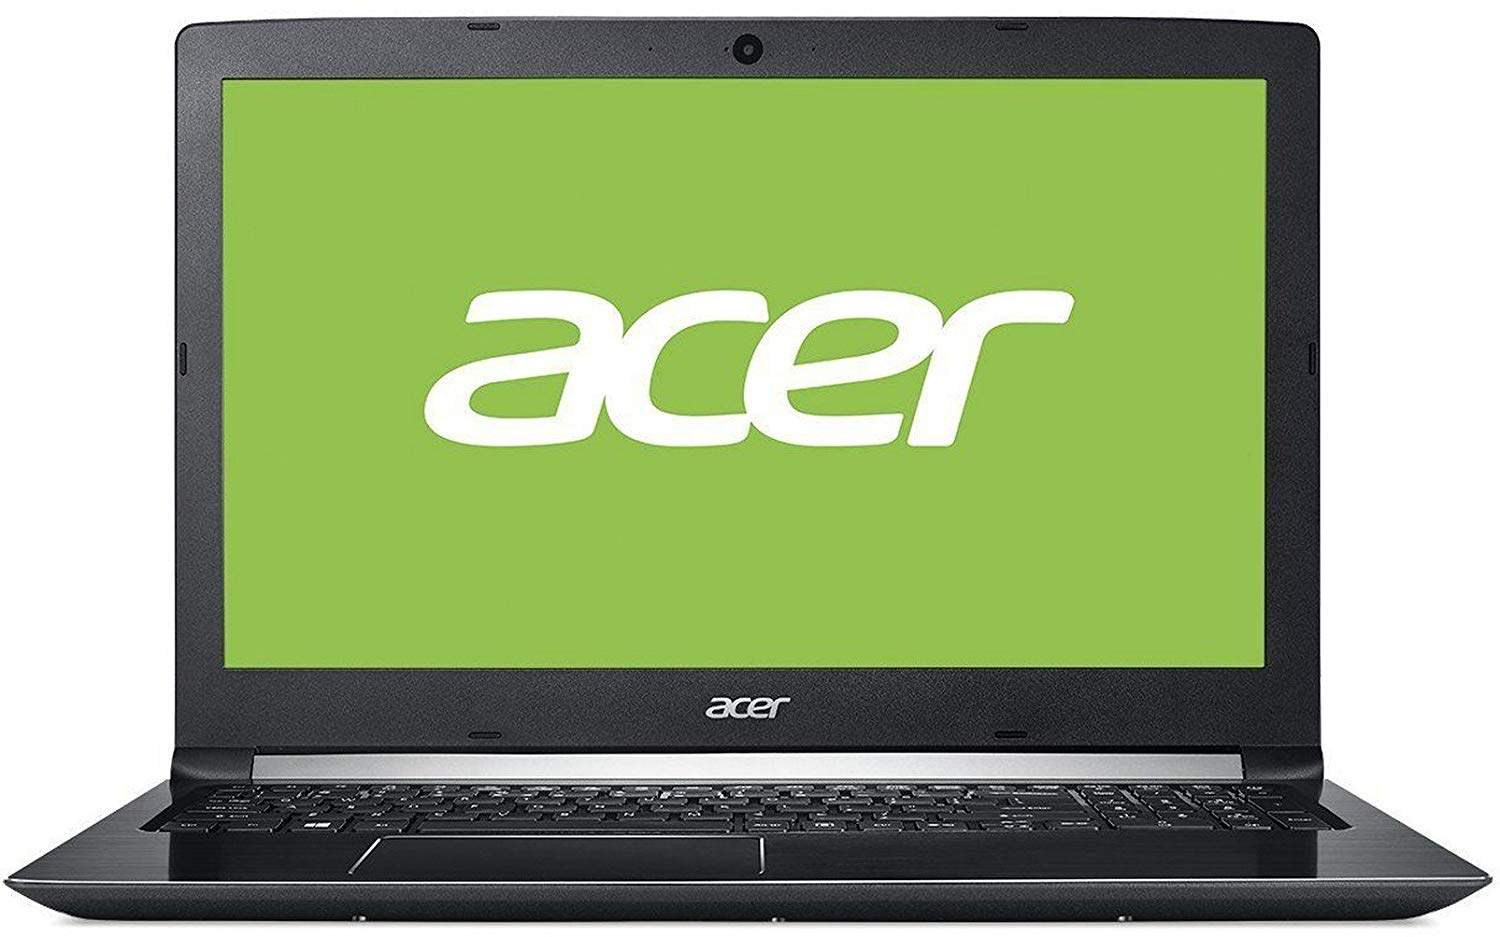 Acer Aspire A515-51 15.6-inch Laptop